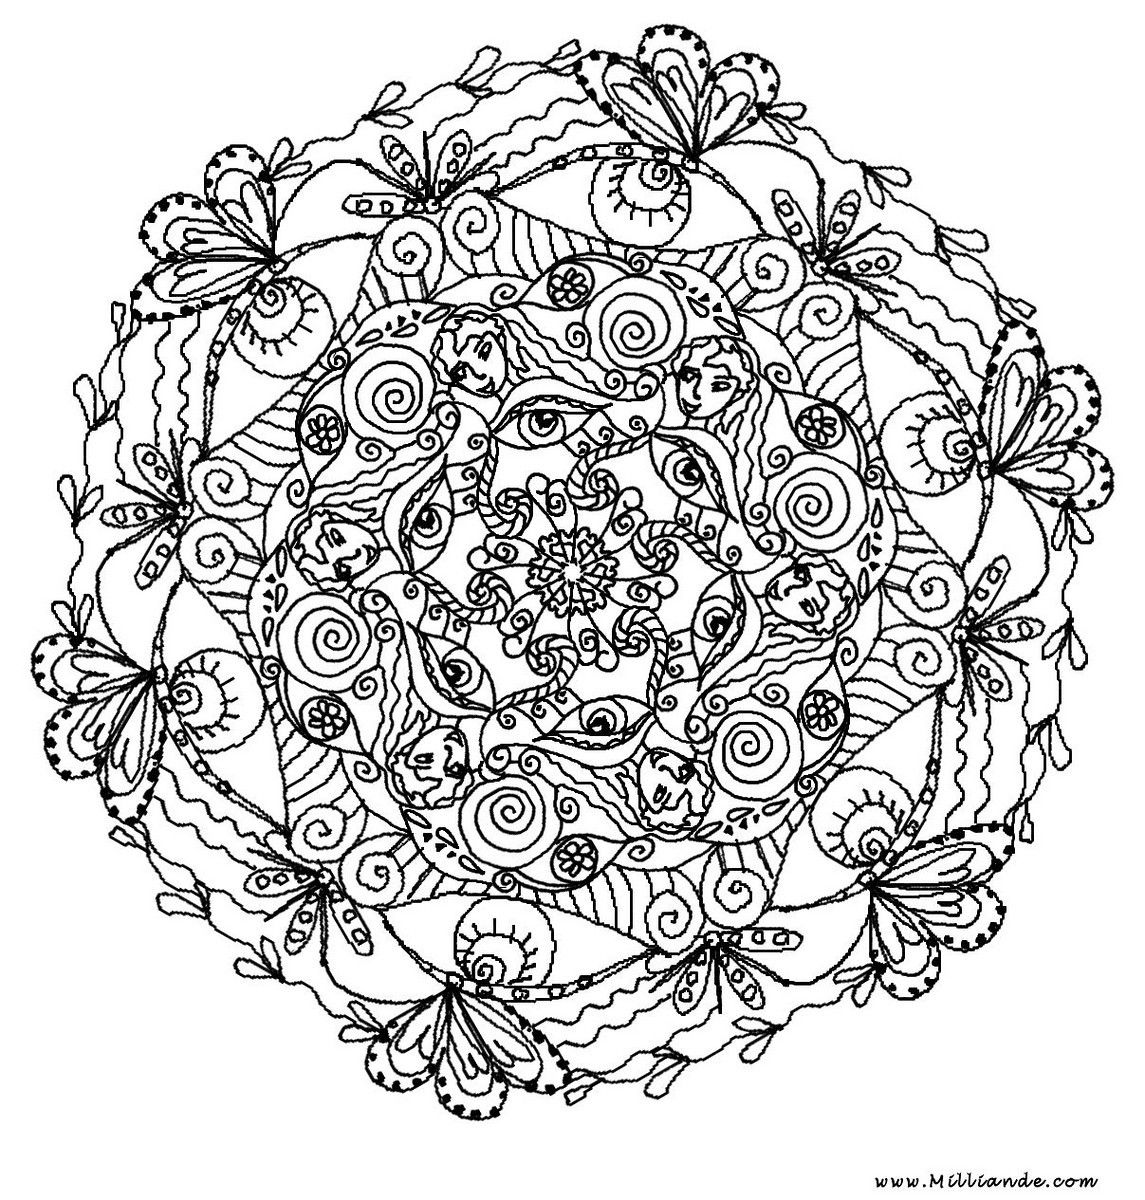 Adult coloring pages free printables mandala - Printable Mandala Coloring Pages Adults Tagged With Advanced Mandala Coloring Pages